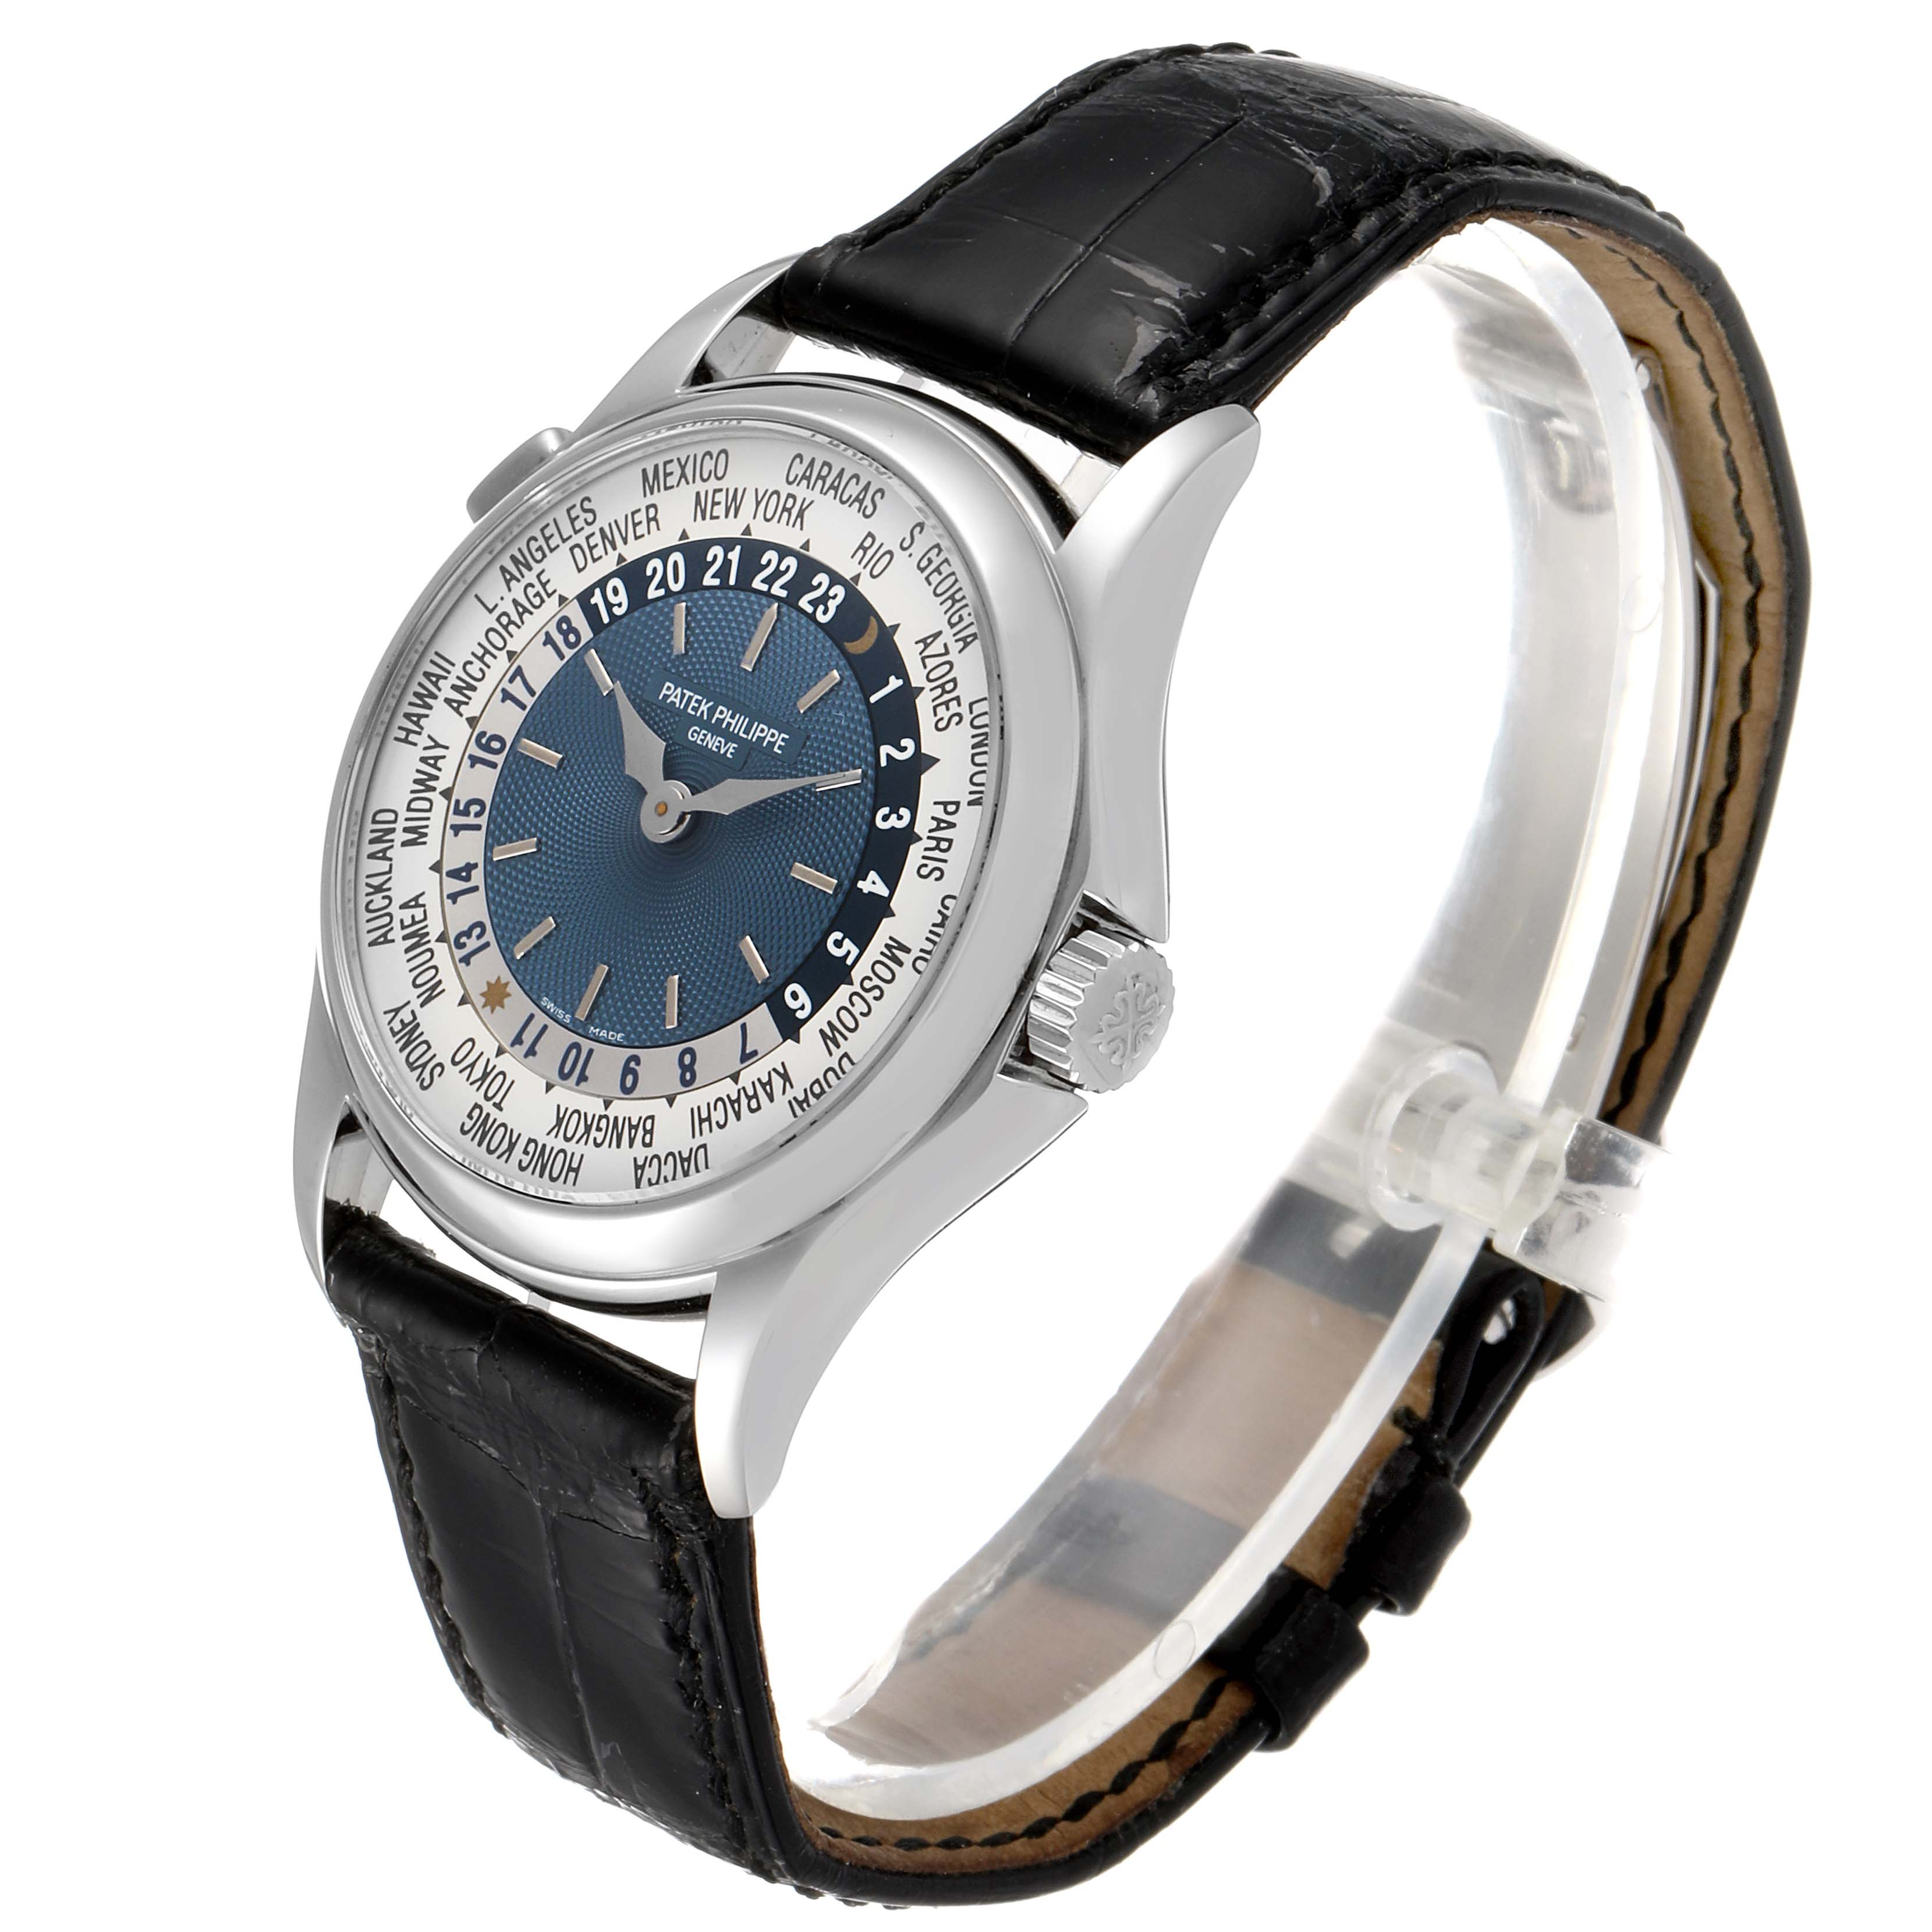 Patek Philippe World Time Complications Platinum Watch 5110 Box Papers SwissWatchExpo